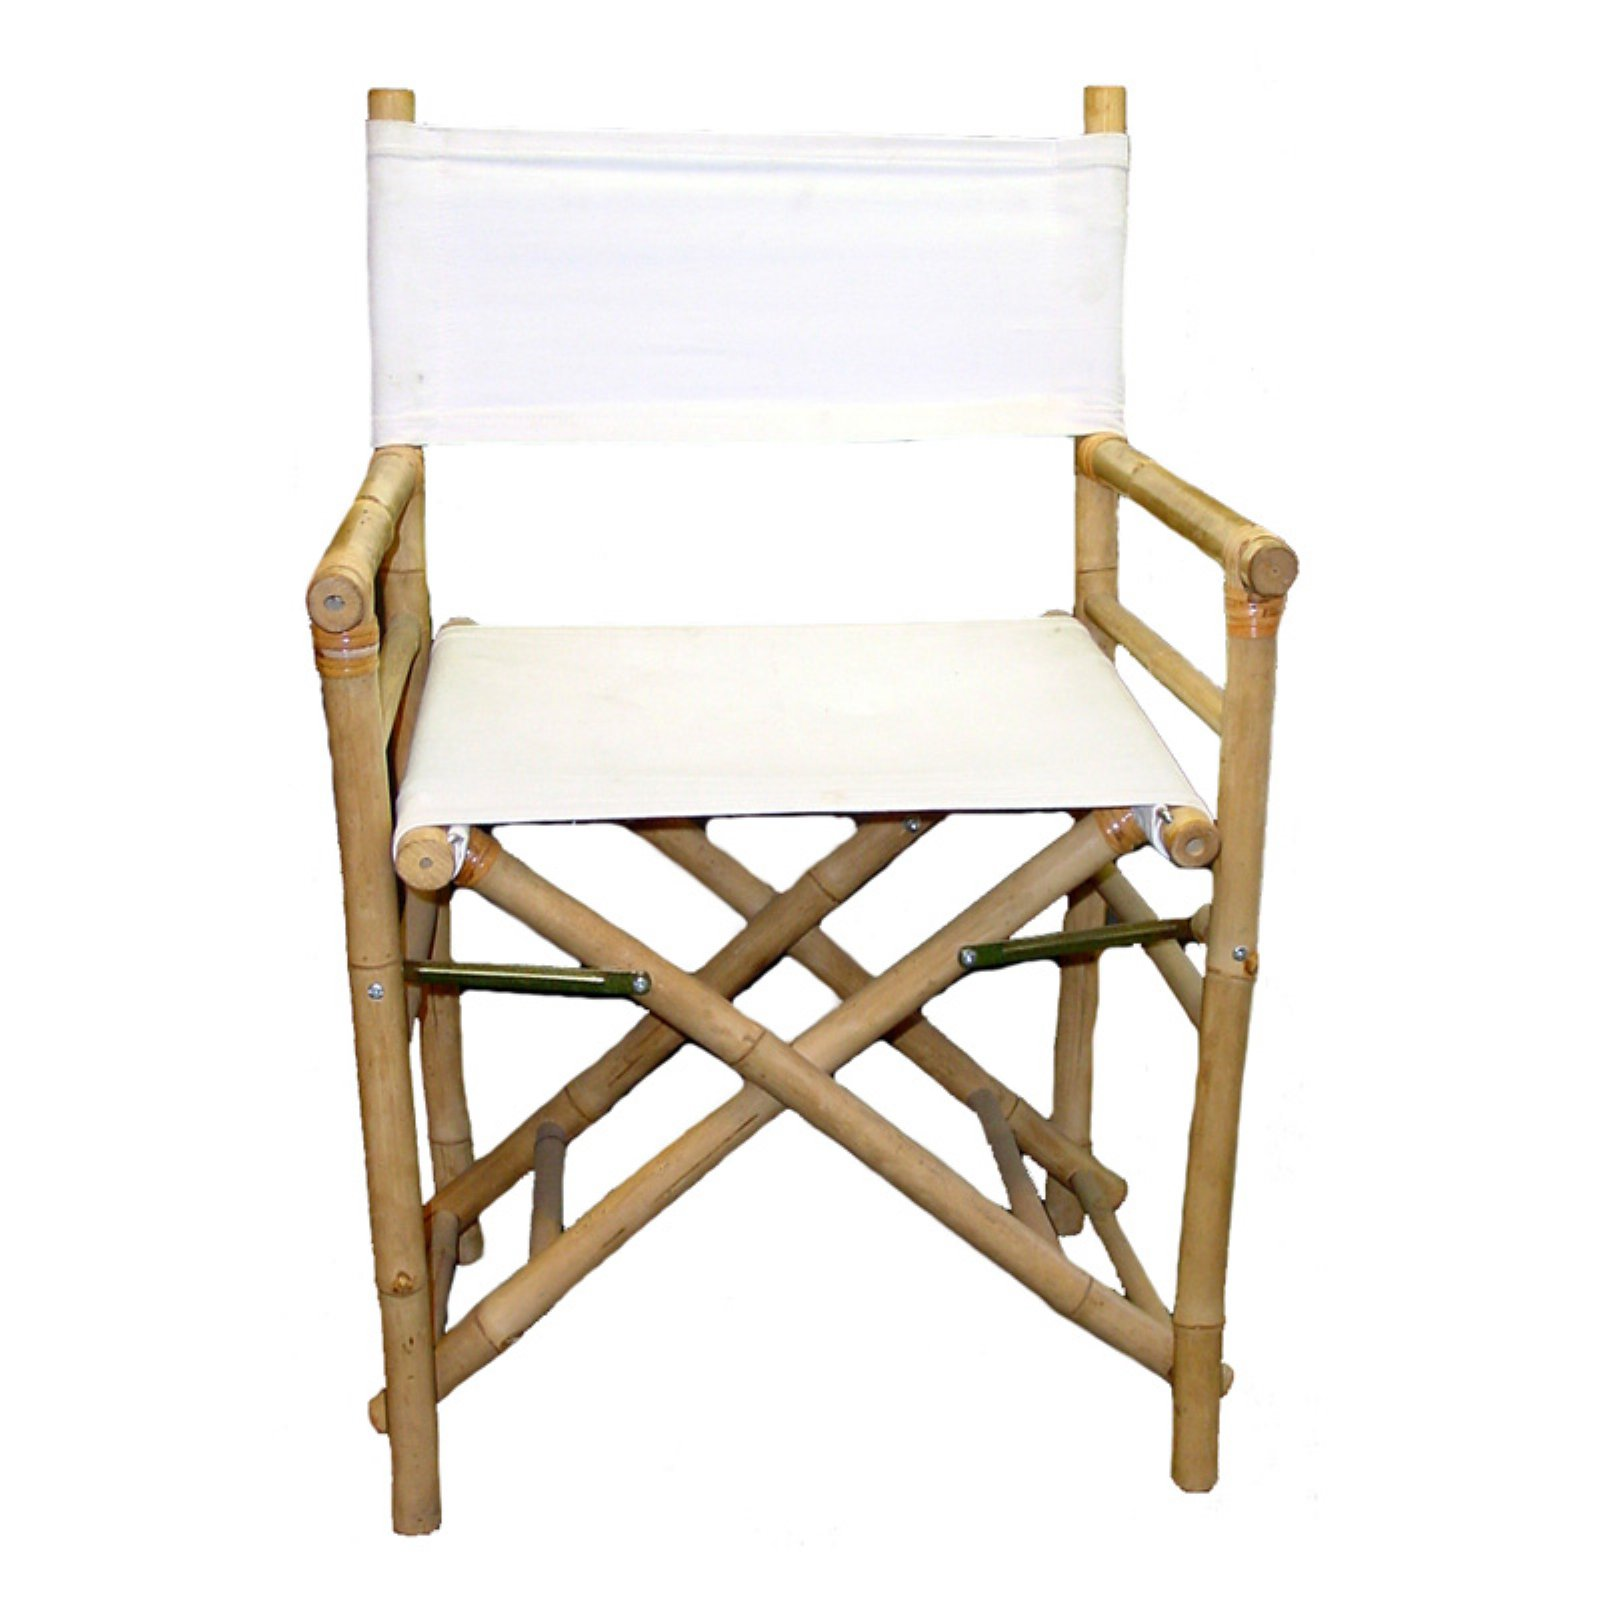 Bamboo54 Folding Bamboo Low Directors Chair with Canvas Cover - Set of 2